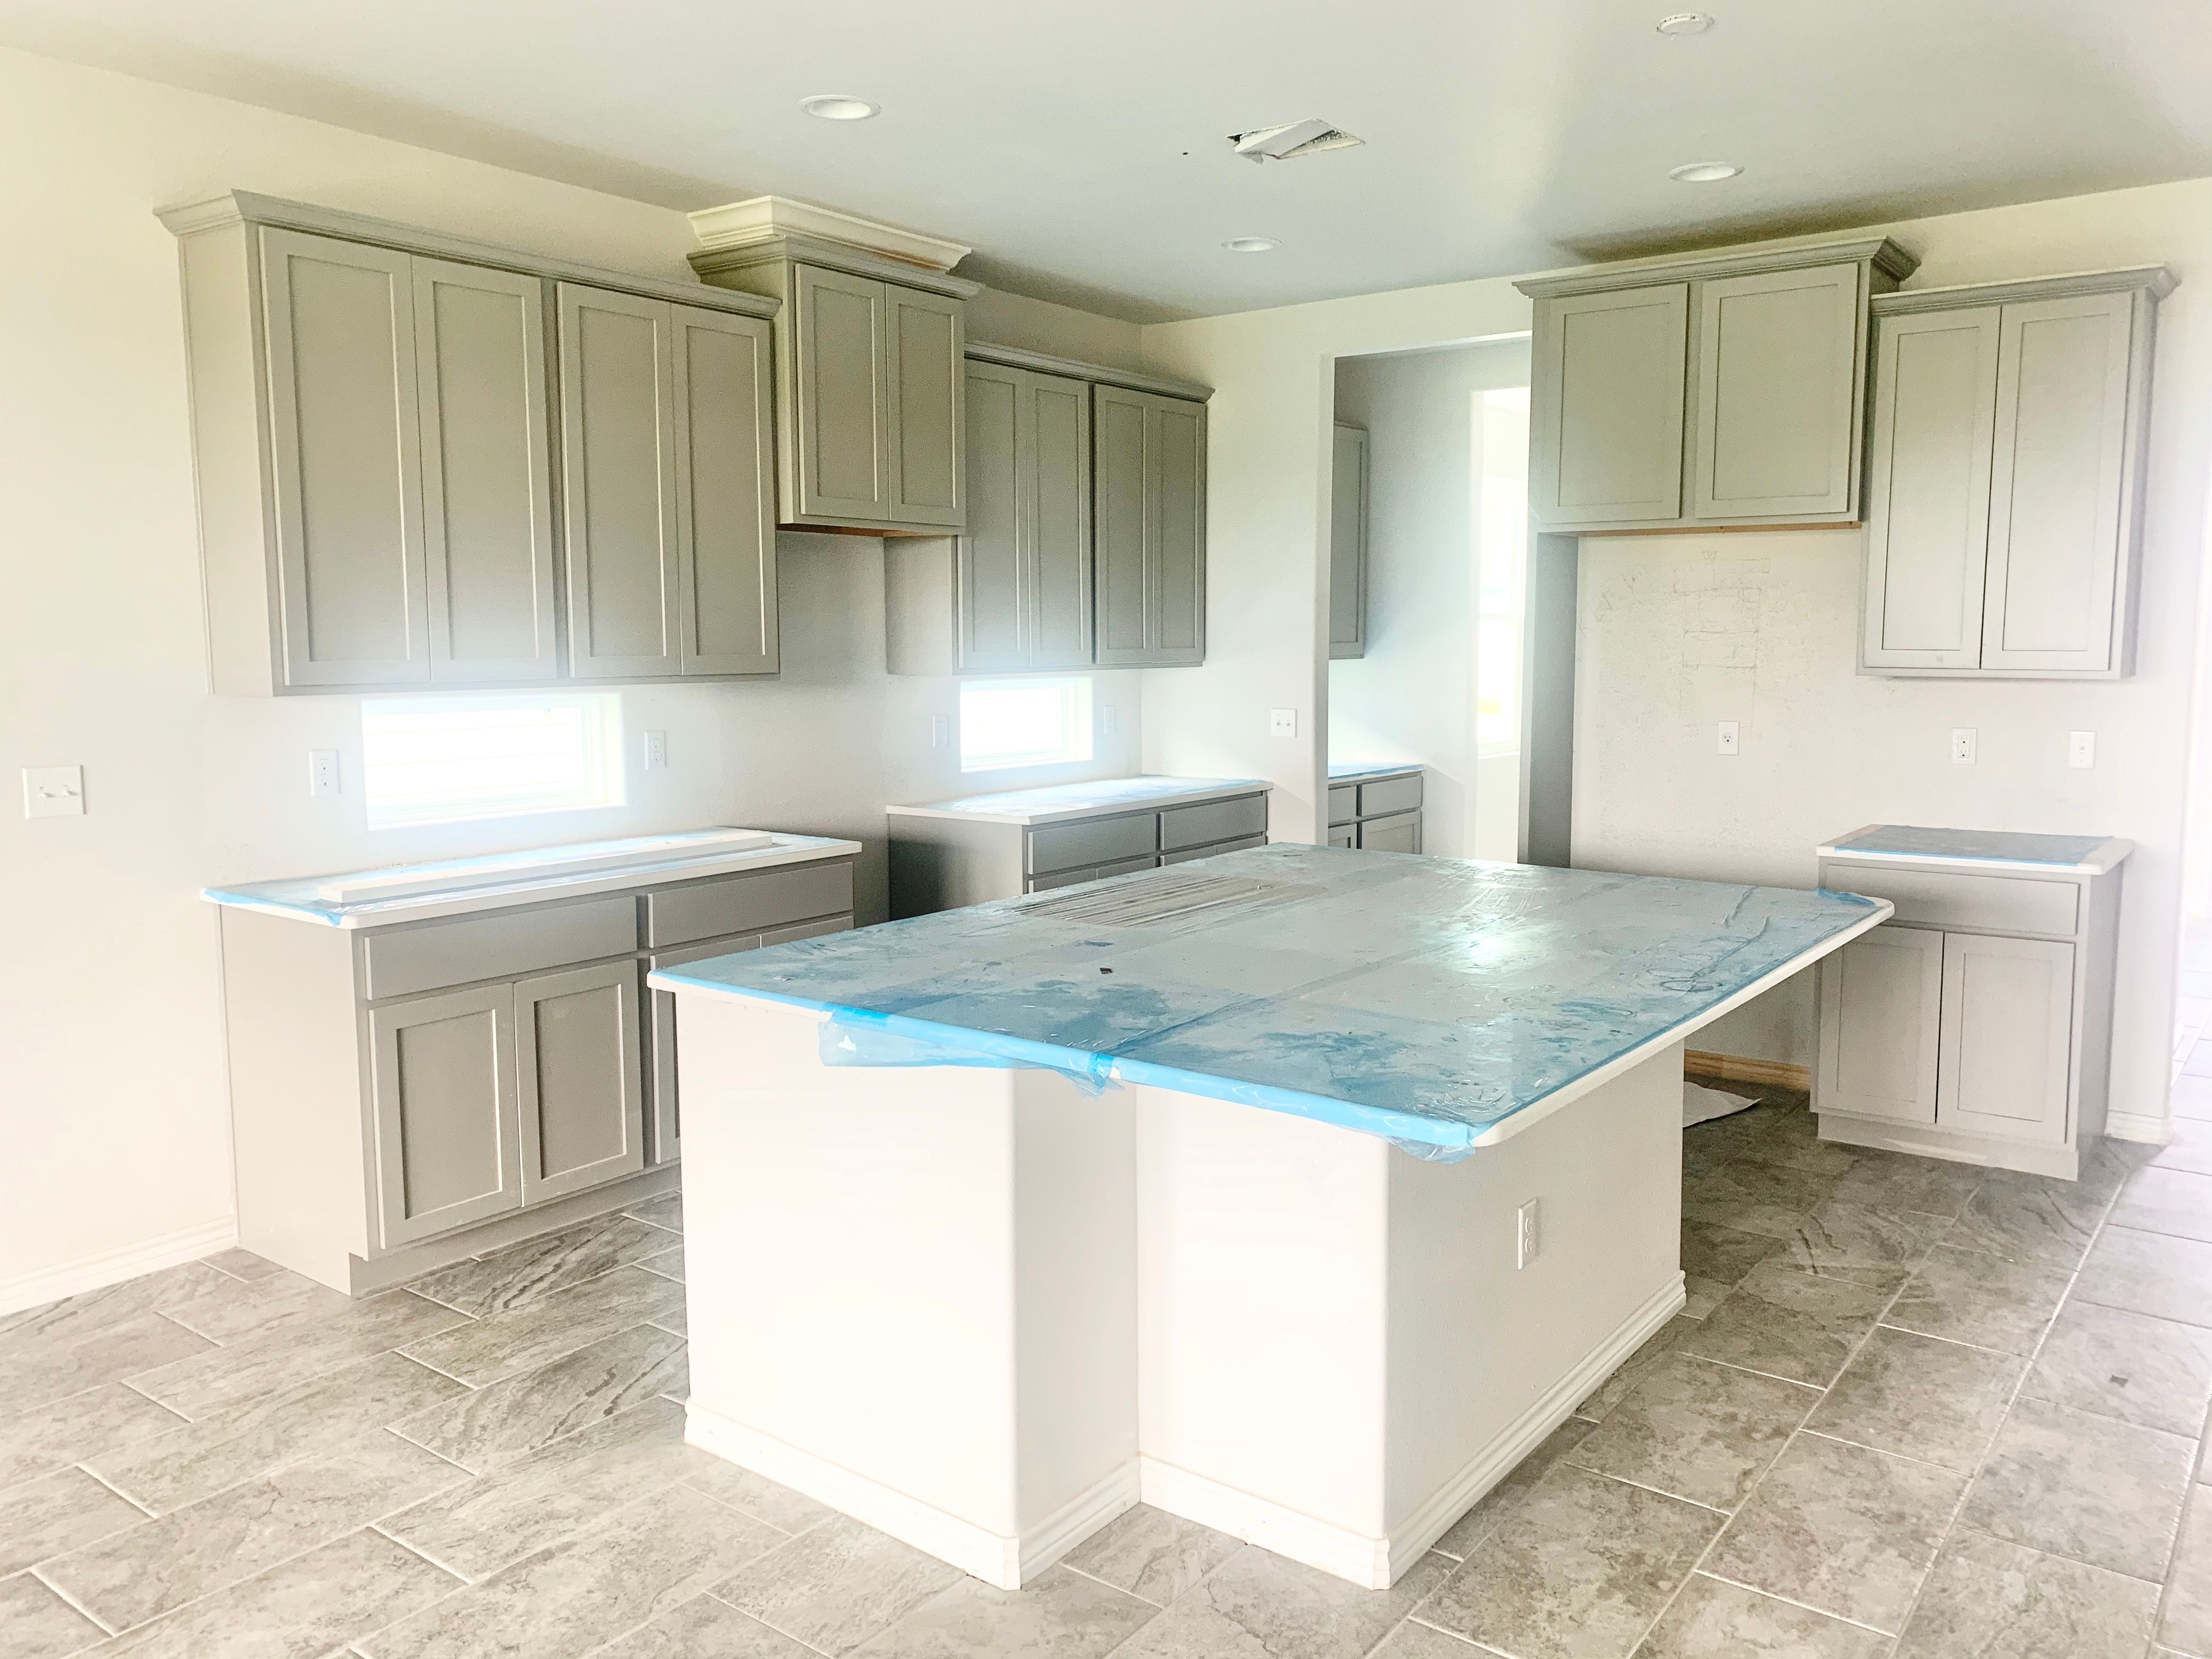 Kitchen featured in the Avocet By Hogan Homes in Corpus Christi, TX